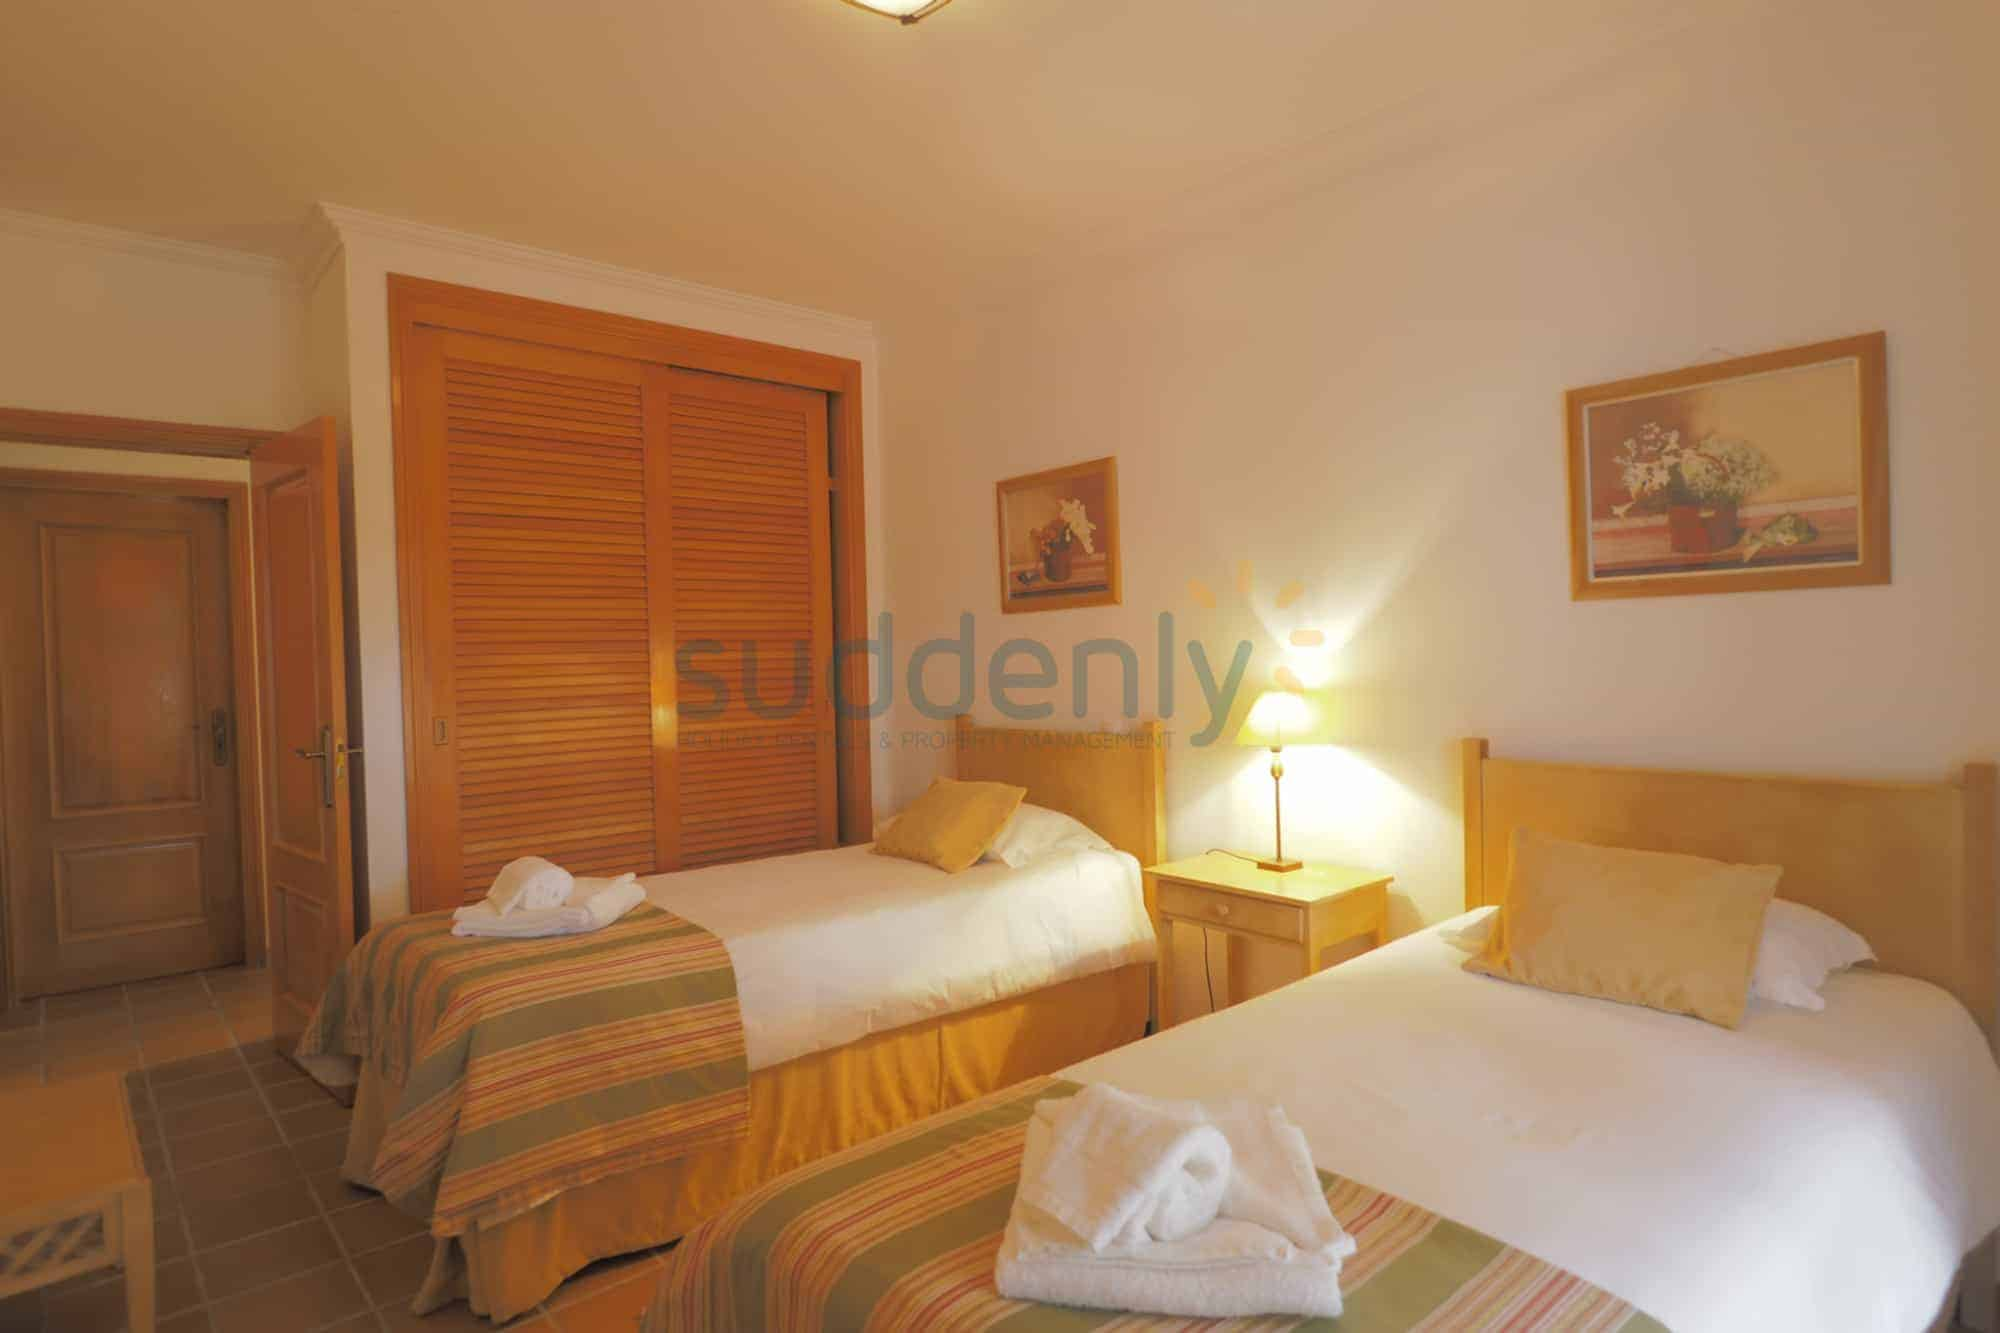 Holiday Rentals in Praia D'El Rey 412